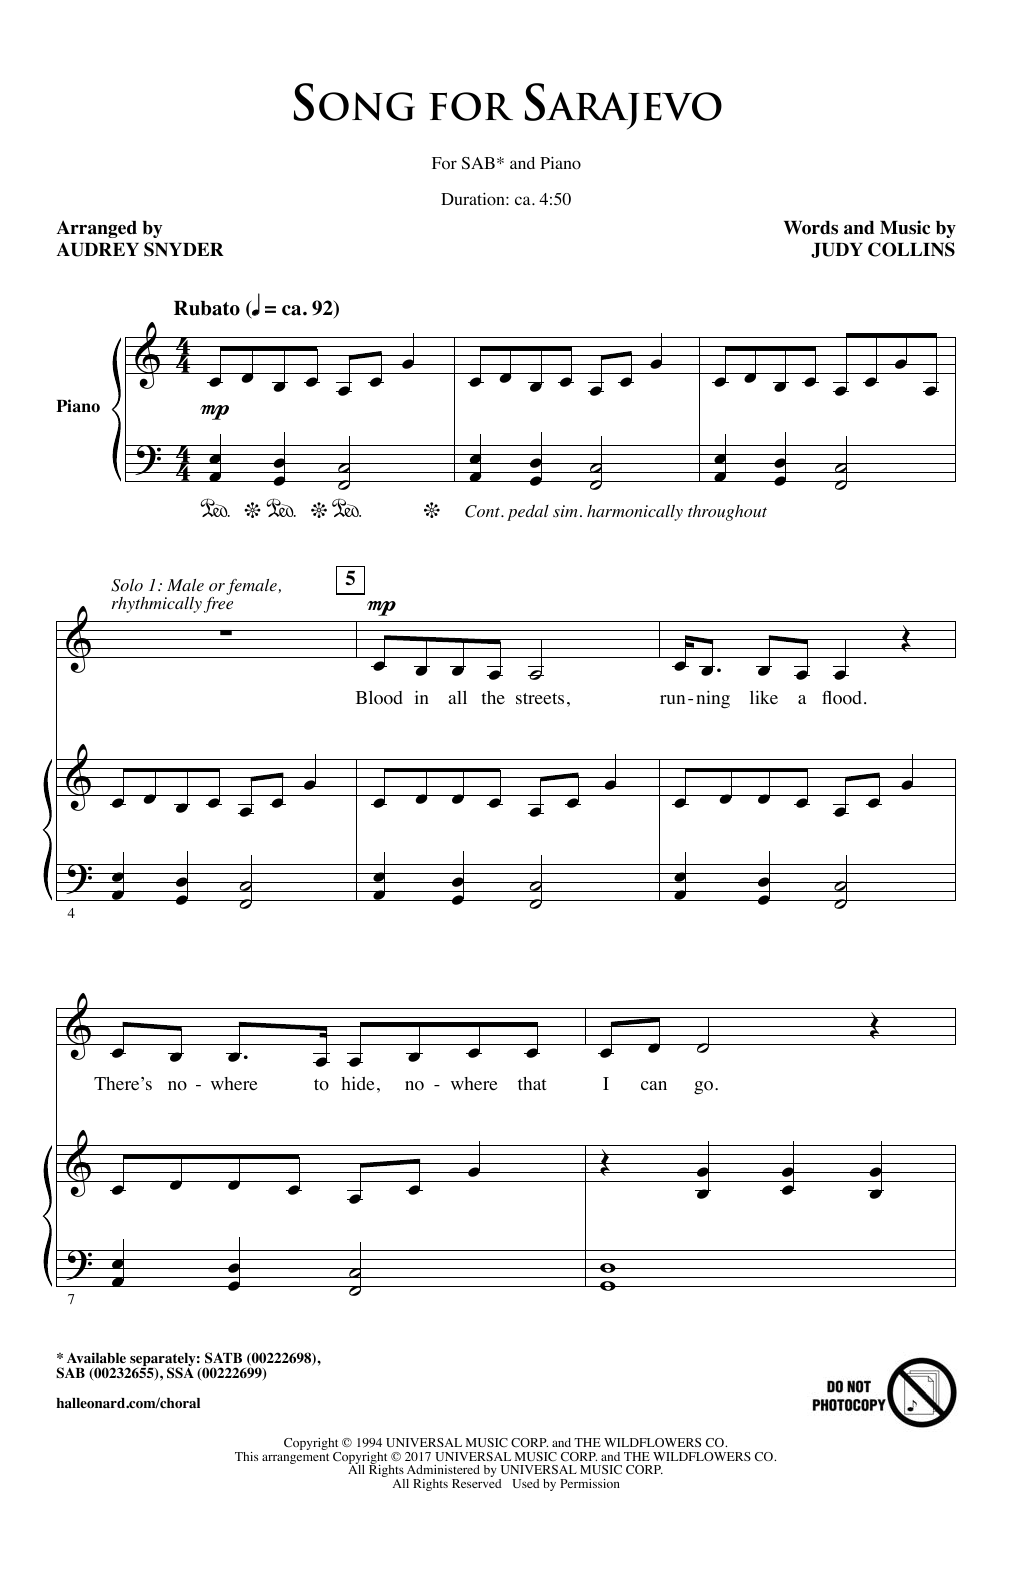 Audrey Snyder Song For Sarajevo sheet music notes and chords. Download Printable PDF.